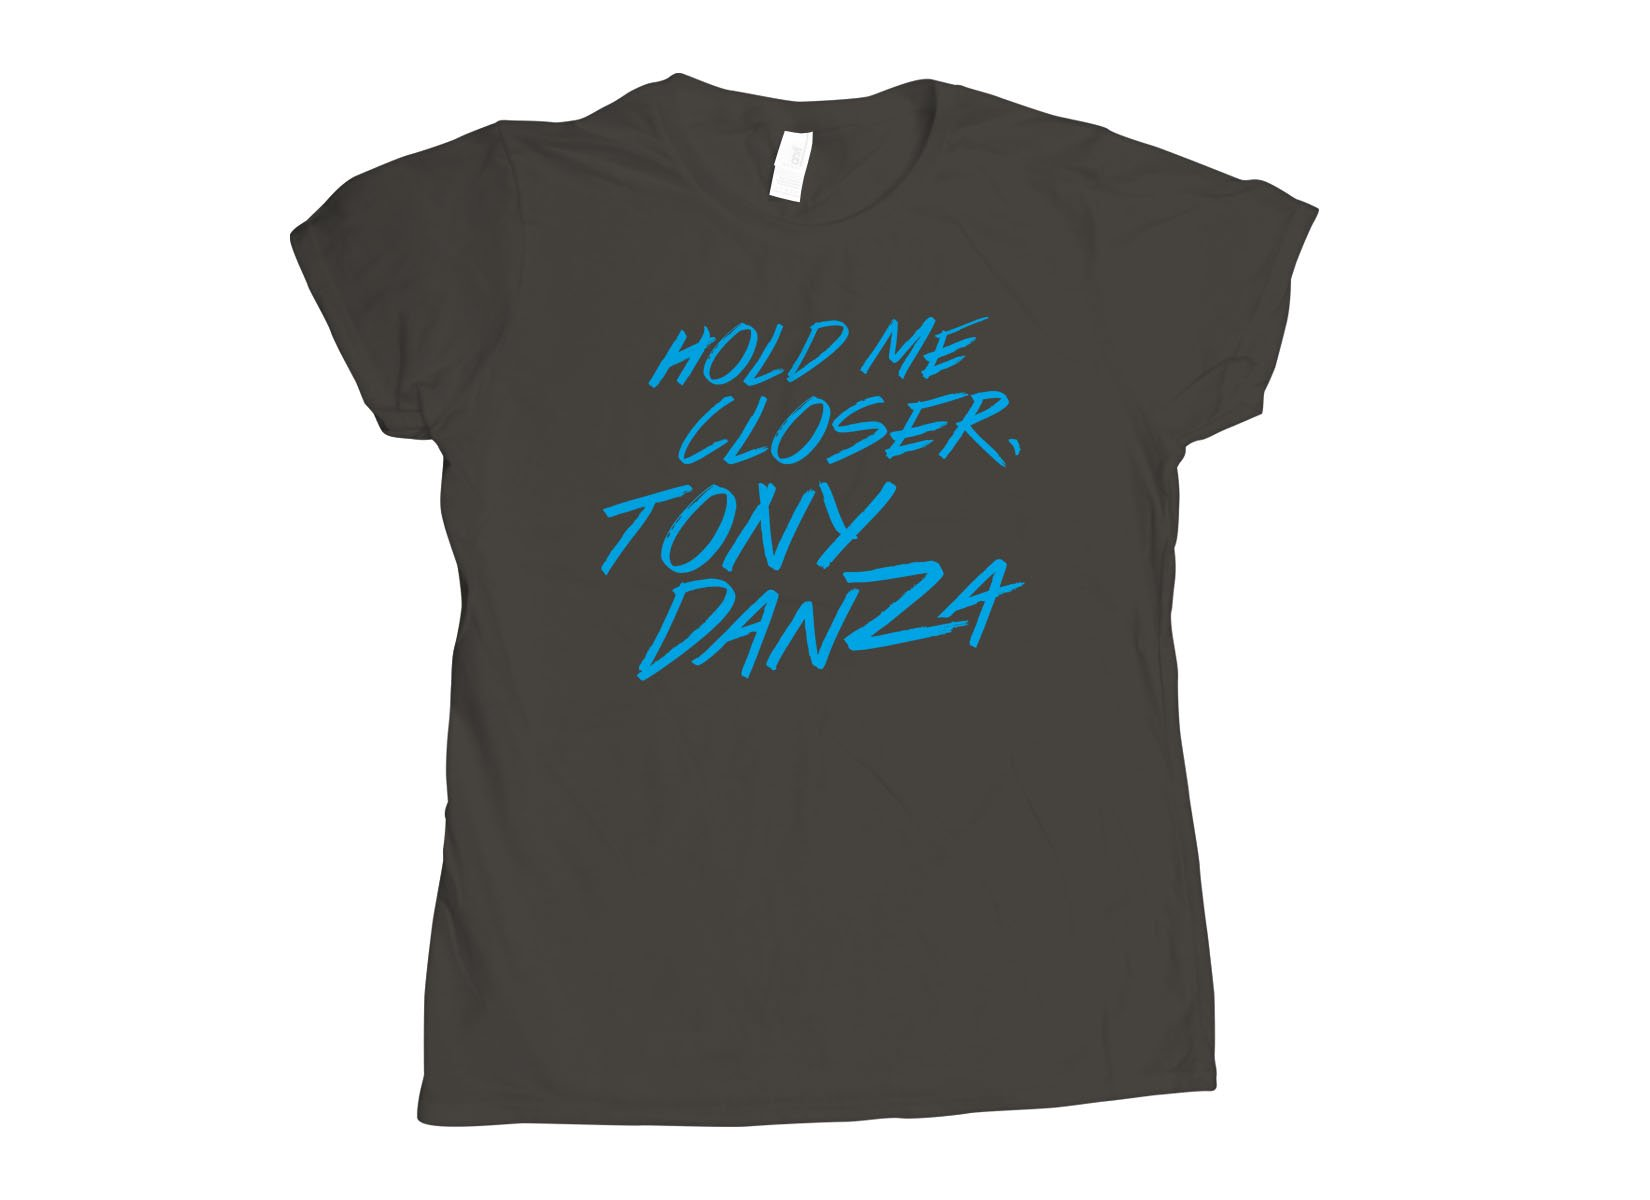 Hold Me Closer, Tony Danza on Womens T-Shirt